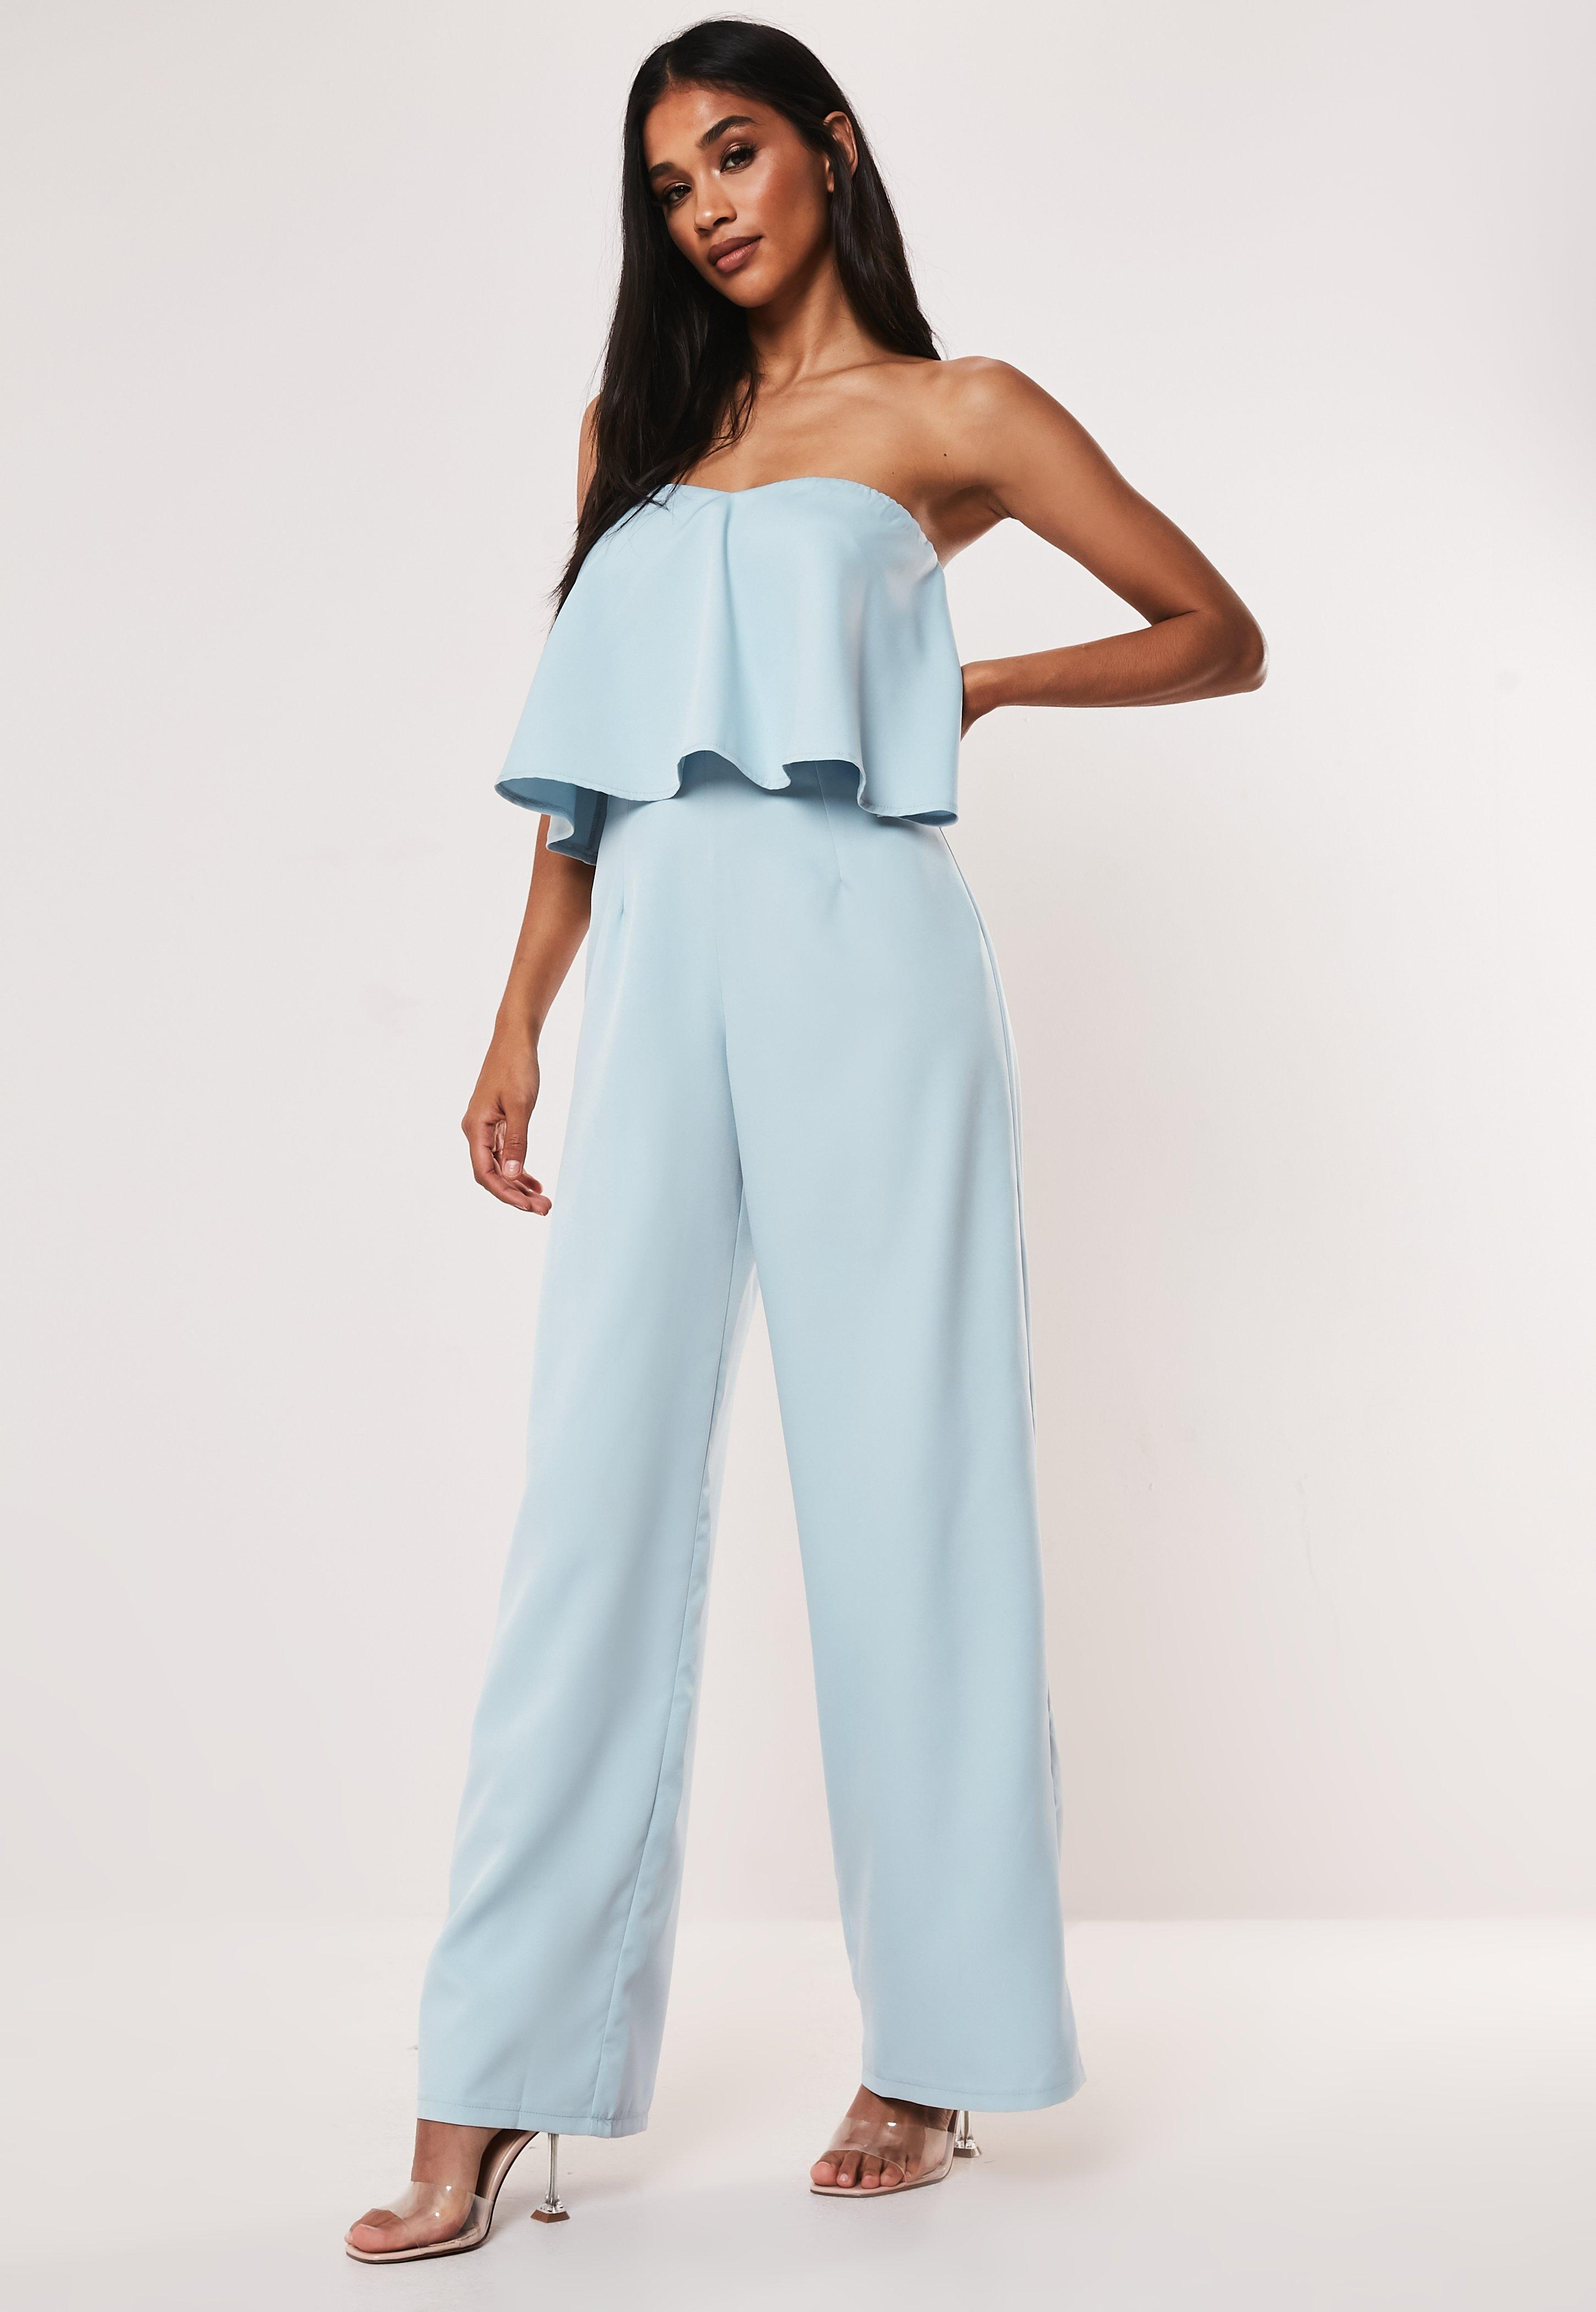 8bee959171f4 Evening Jumpsuits, Going Out Jumpsuits - Missguided